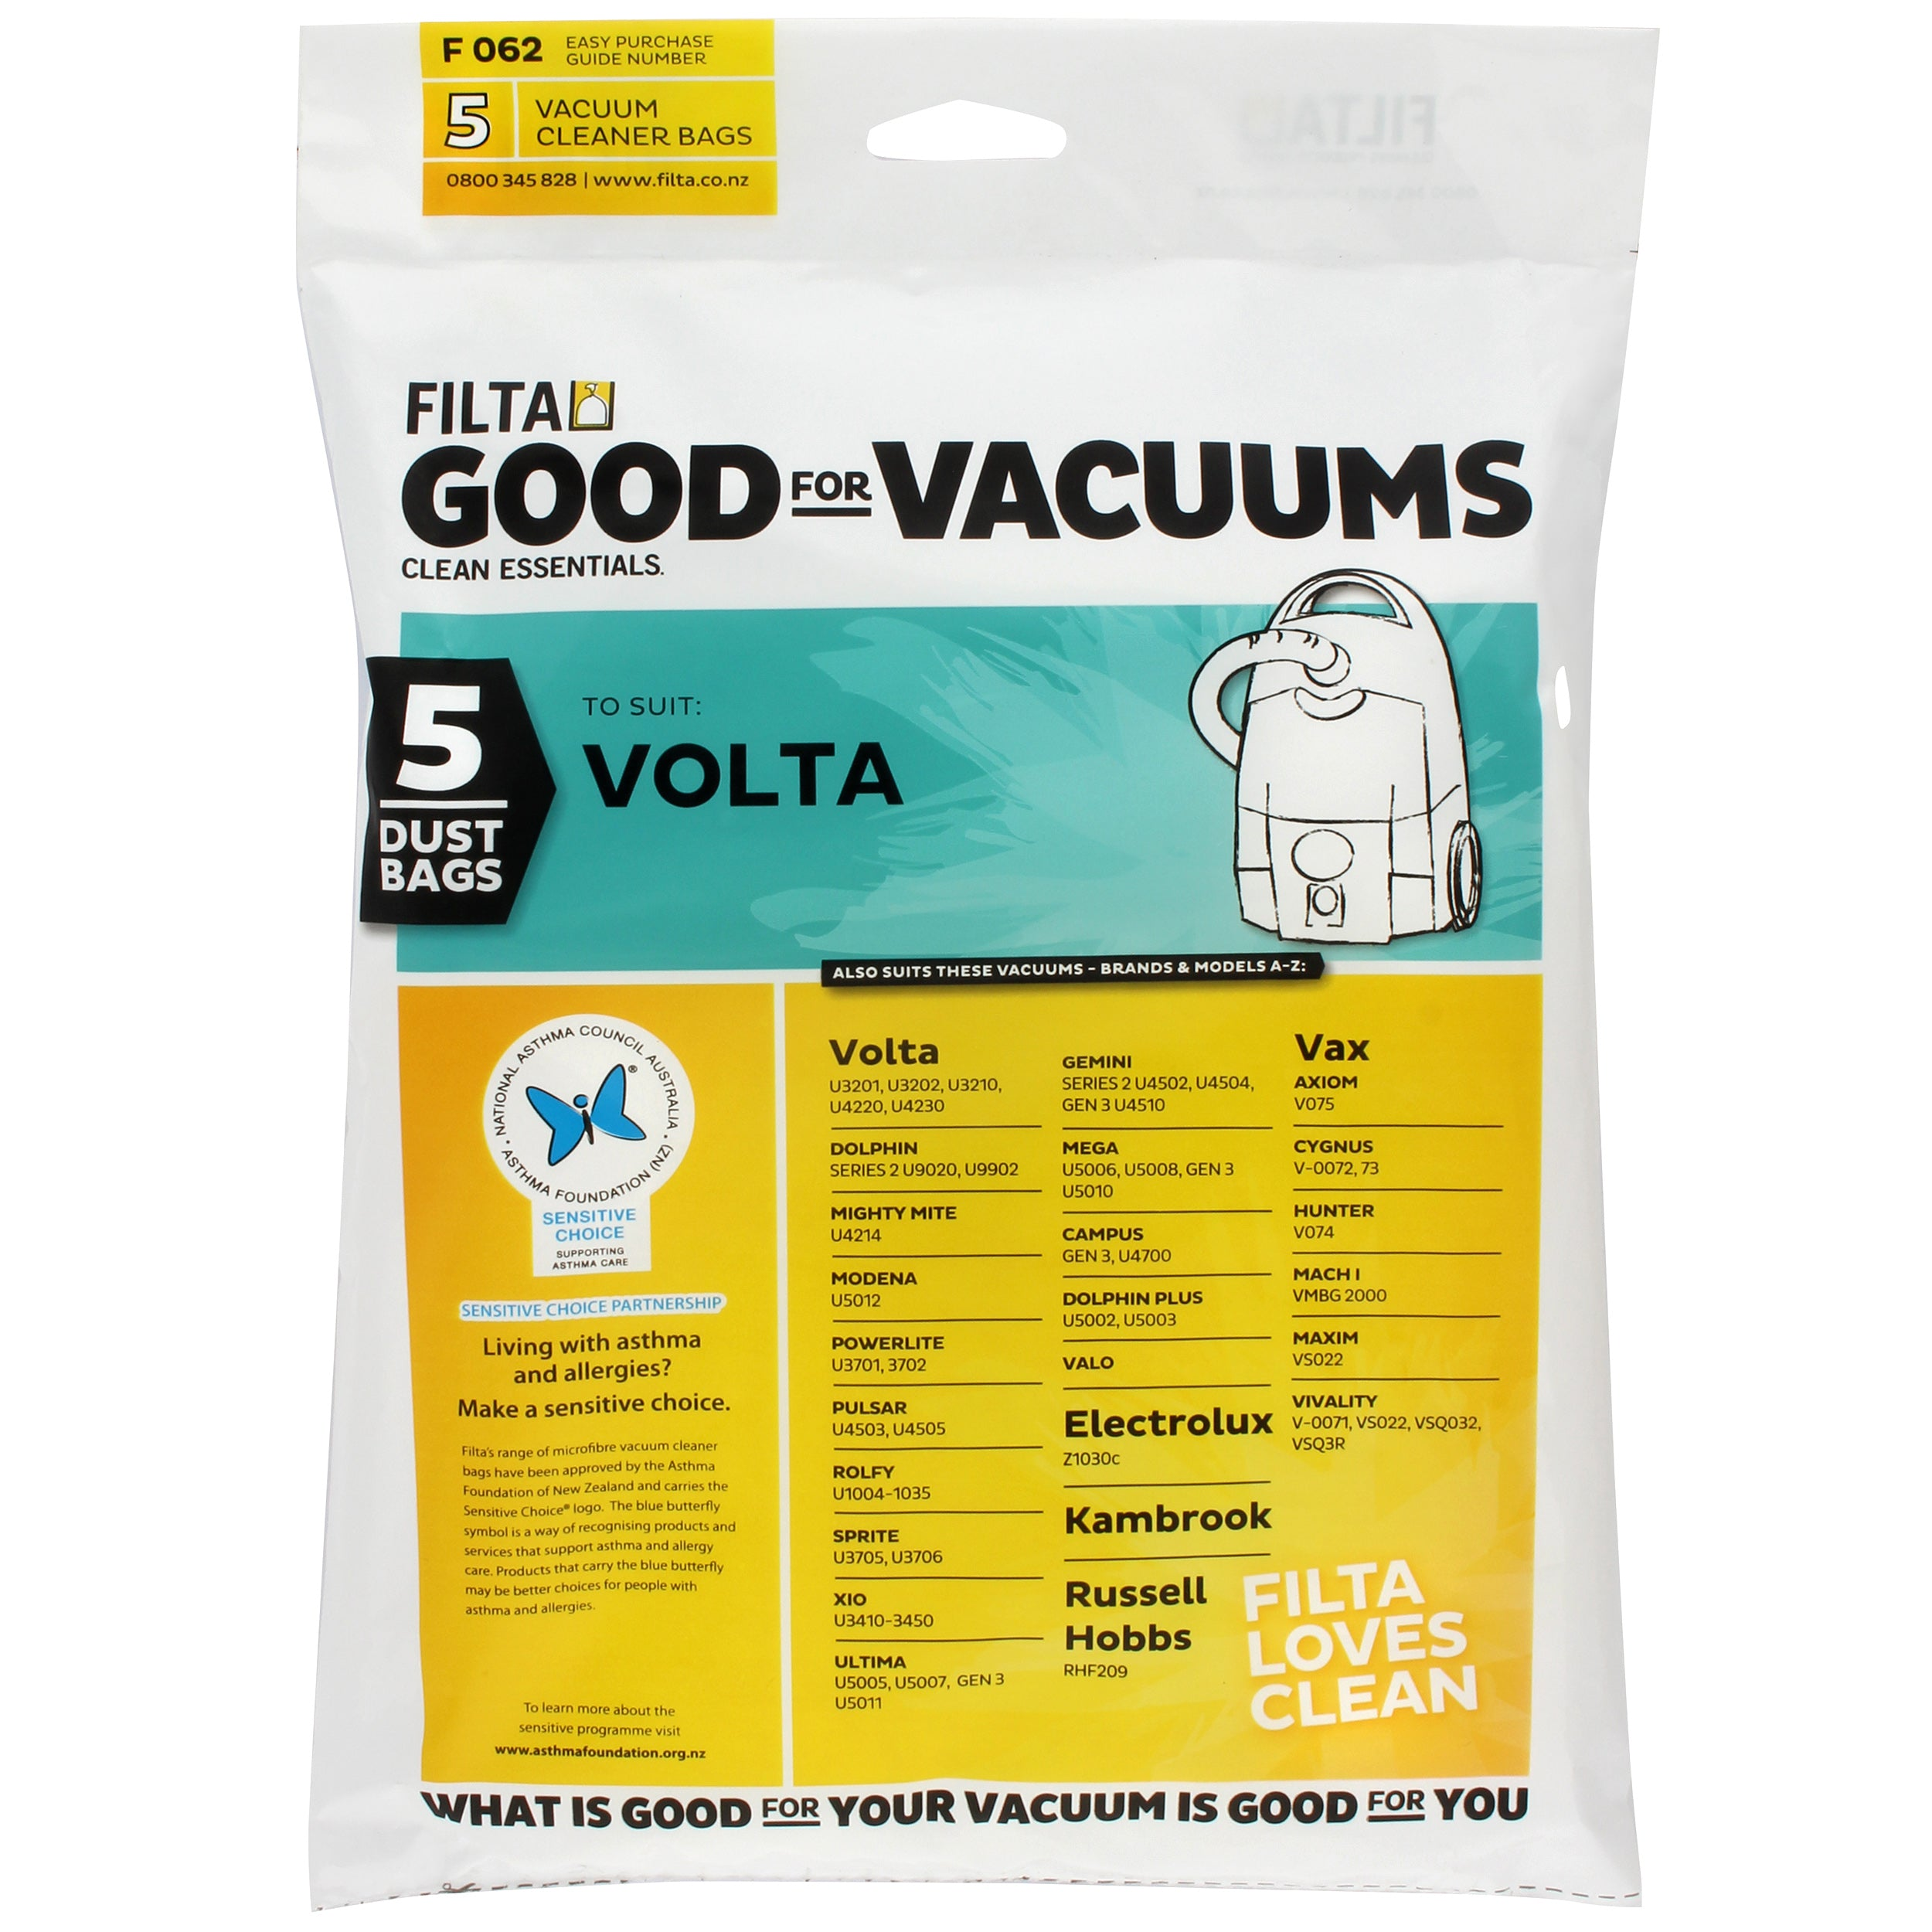 FILTA VOLTA MICROFIBRE VACUUM CLEANER BAGS 5 Pack - Sold by Single Unit in multiples of 1 Single Unit (F062)